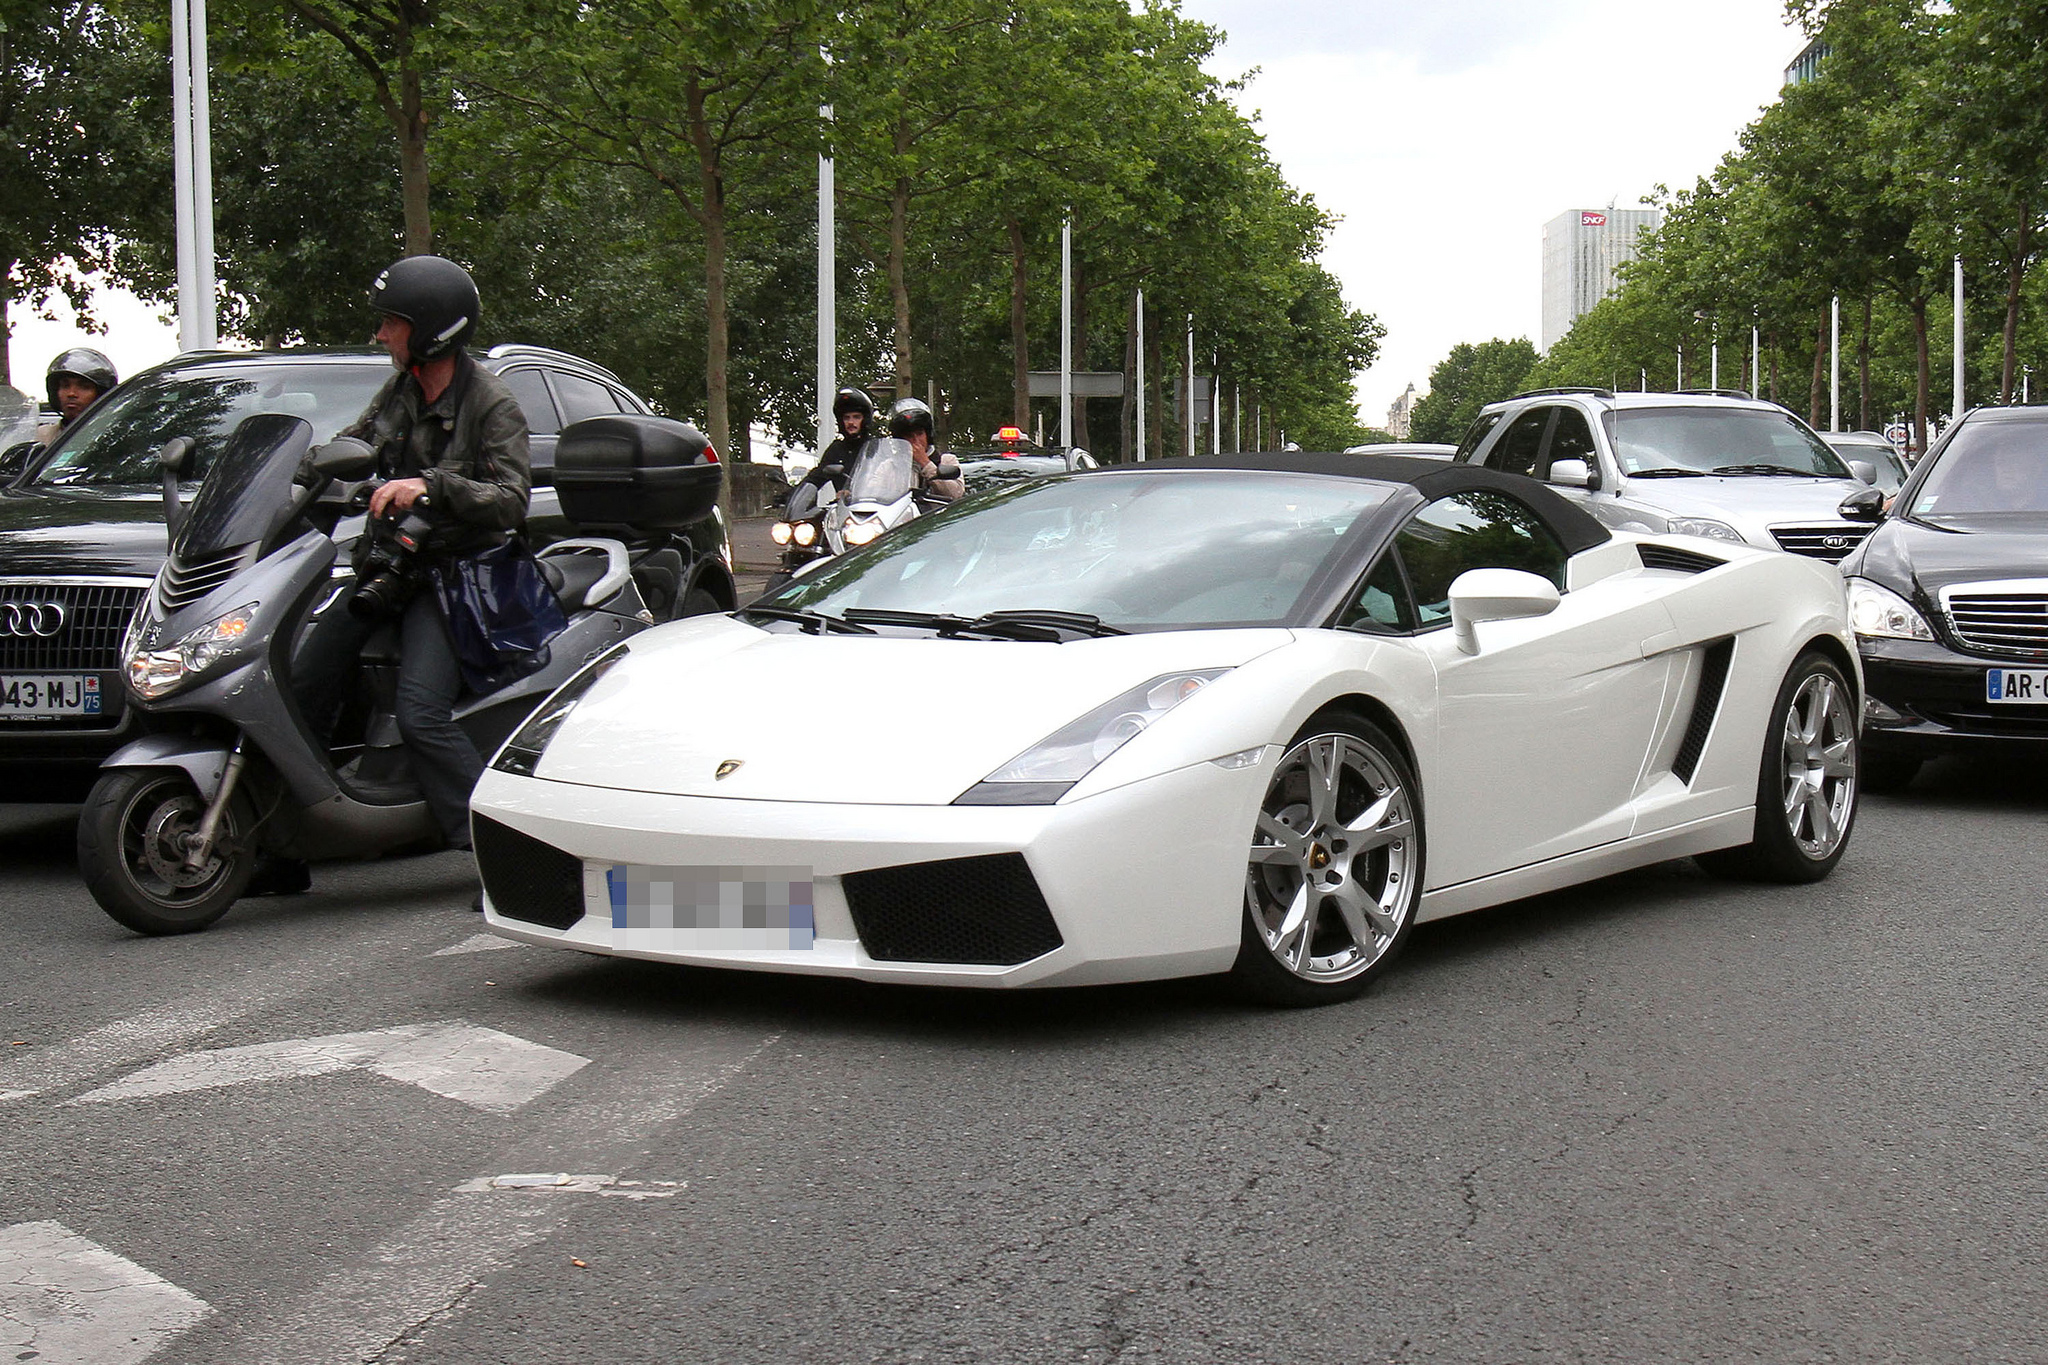 Kanye West and Kim Kardashian drive around Paris